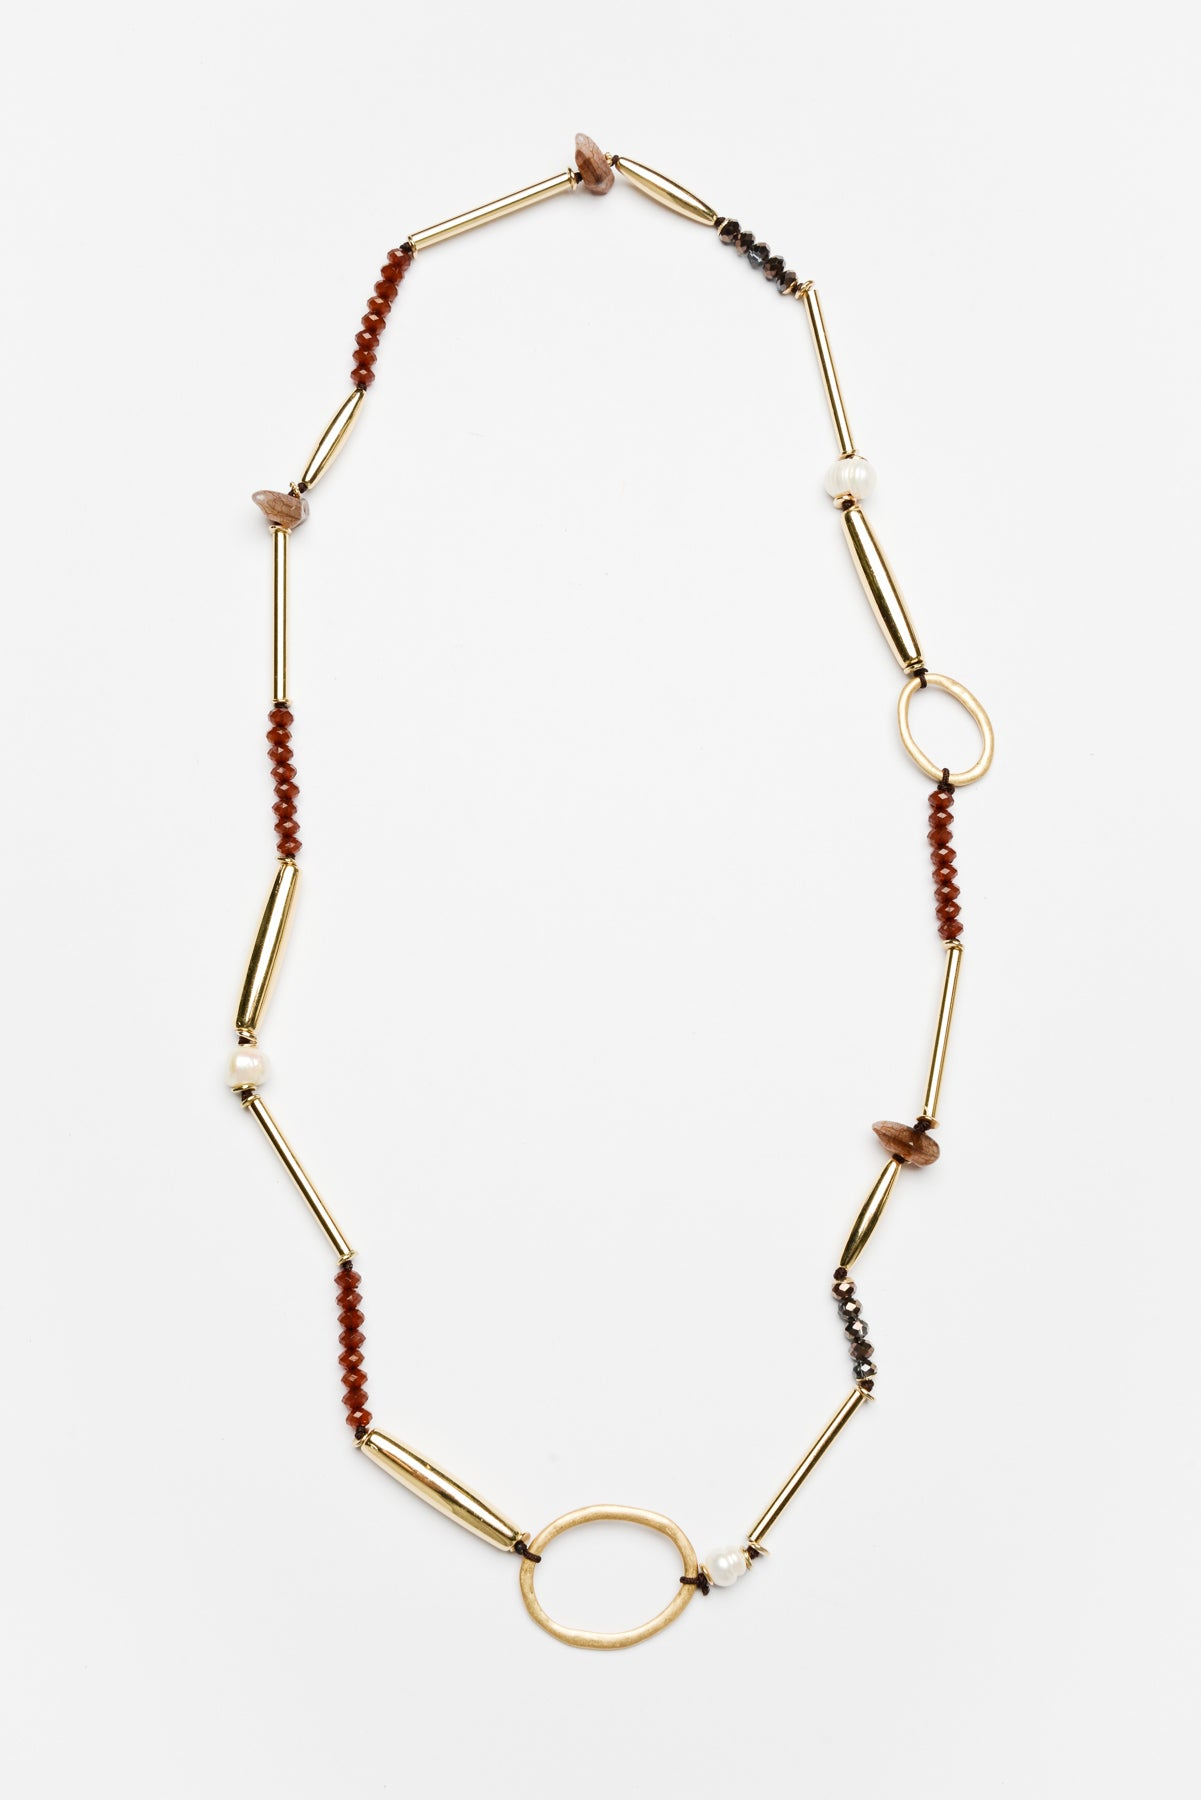 Theora Gold Beaded Necklace - Blue Bungalow